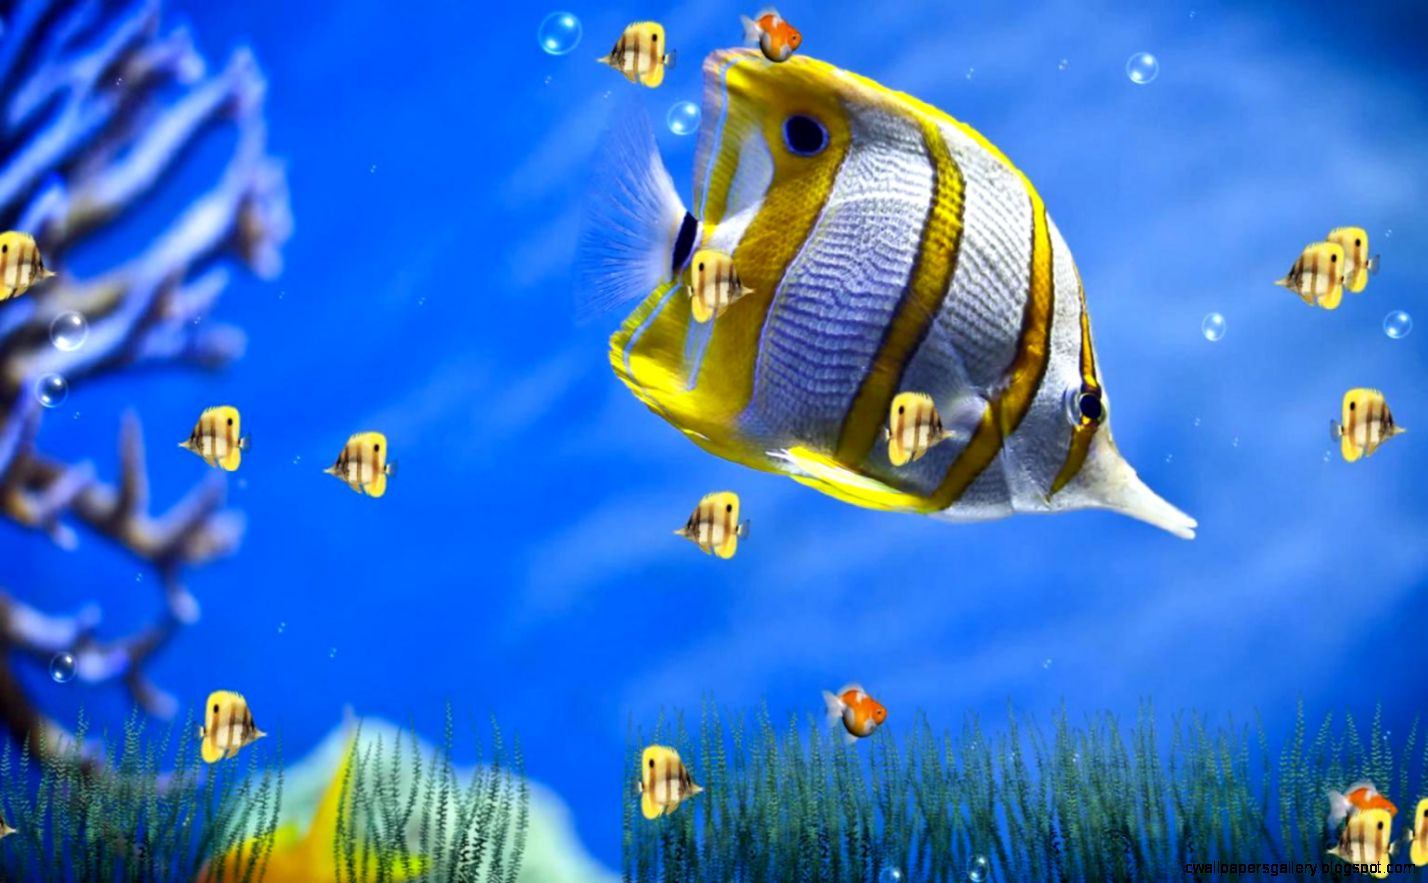 Animated Wallpapers Of Fish photos of The Advantage of Using